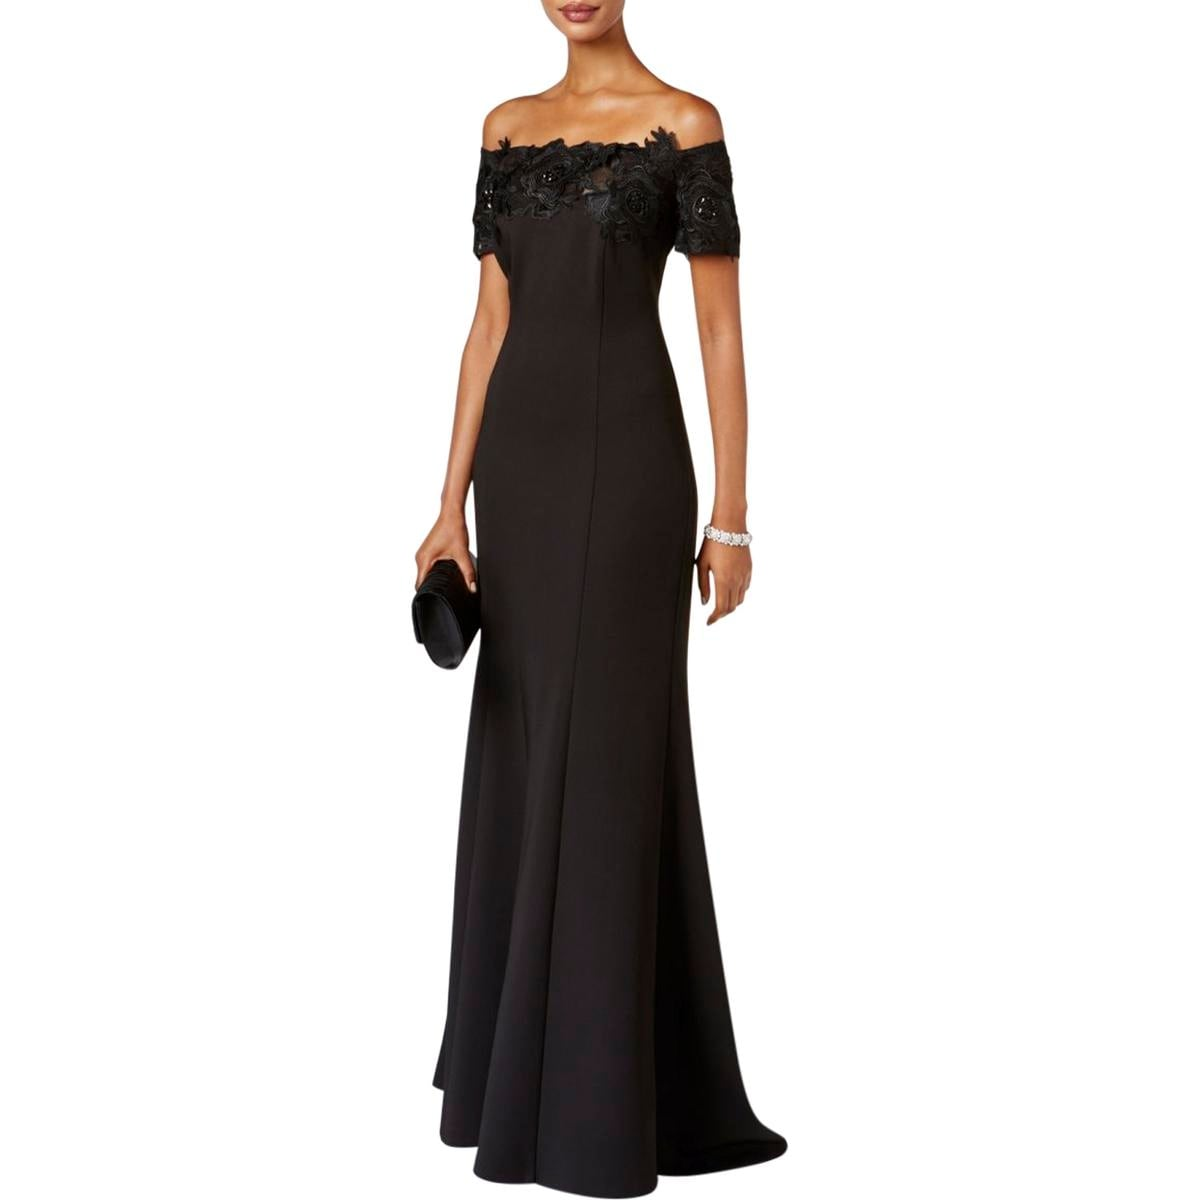 Shop Ignite Evenings Womens Evening Dress Lace Trim Sequined - Free ...